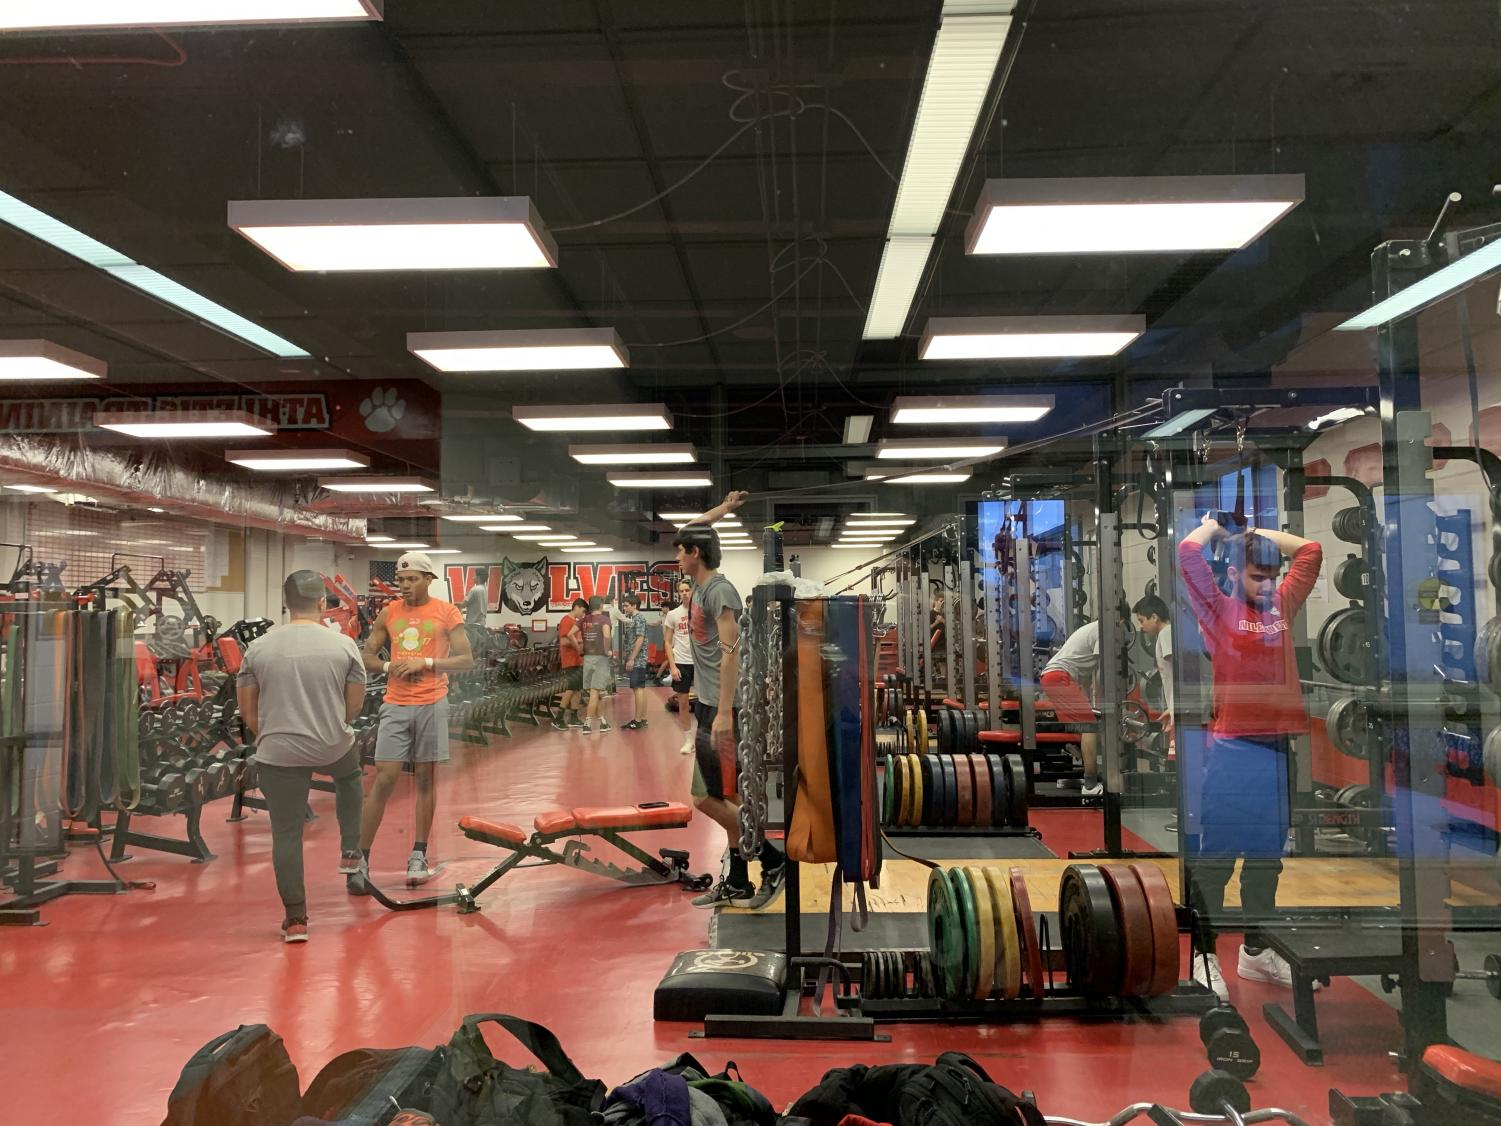 Students are now able to access the weight room after school.